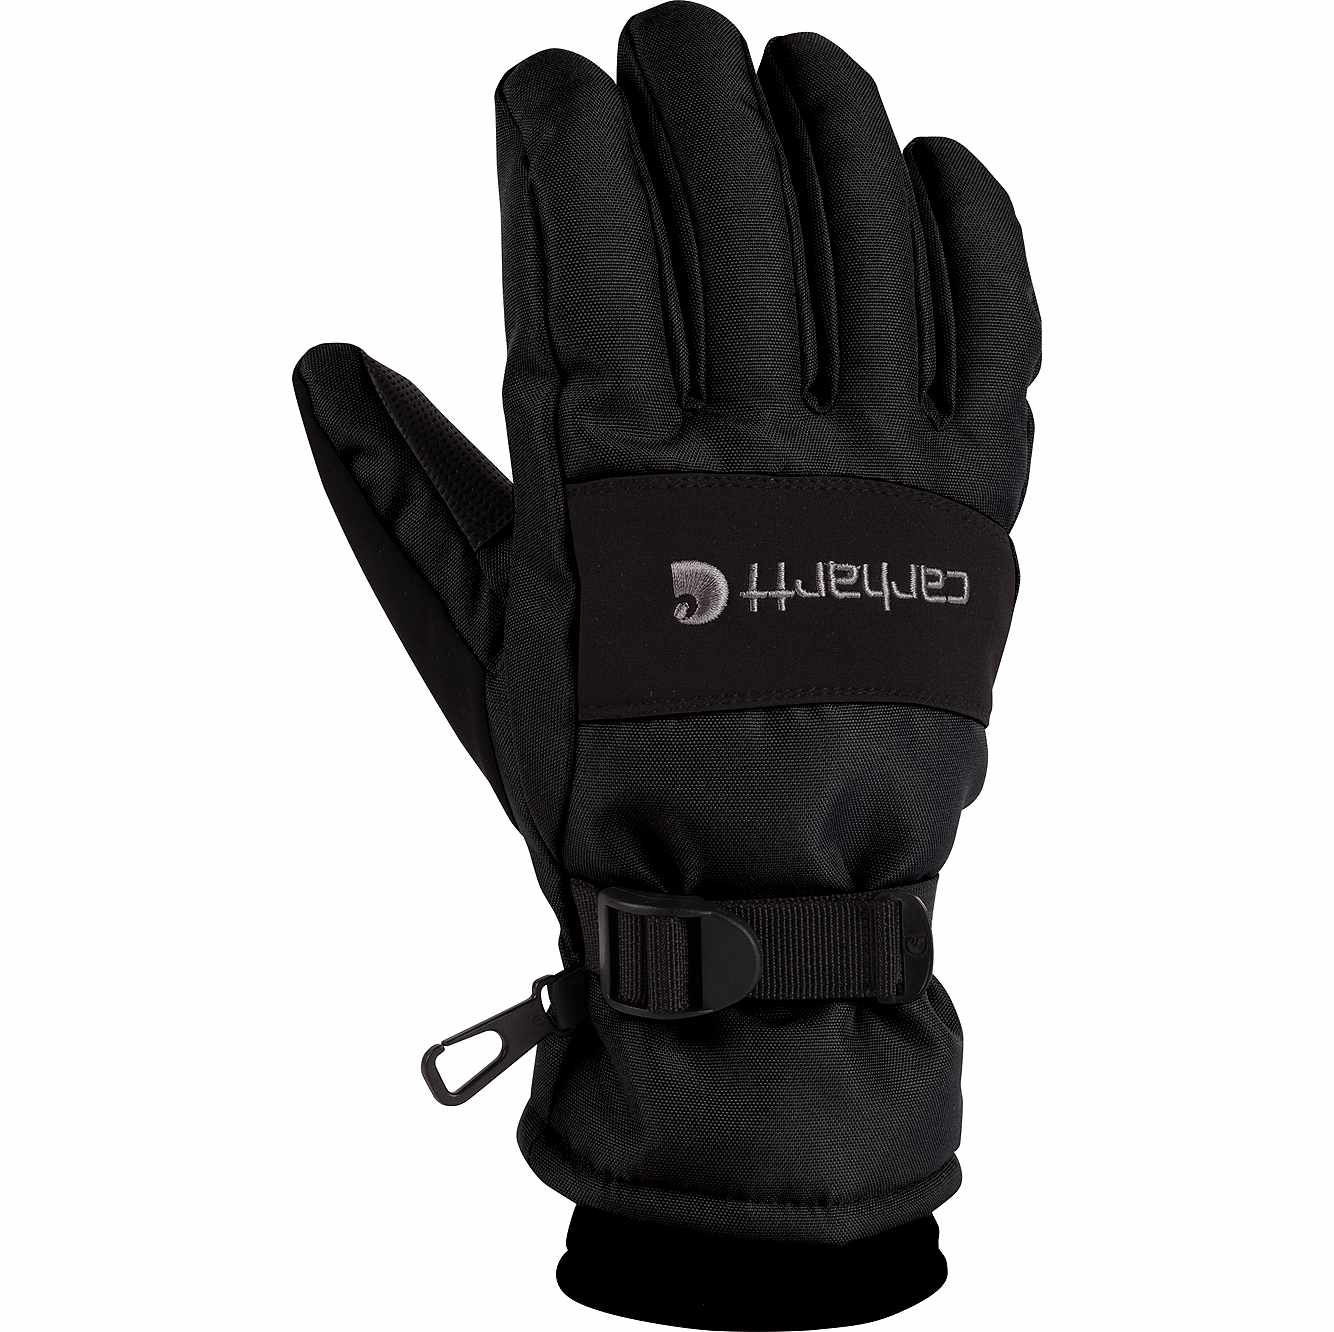 Picture of Waterproof Insulated Glove in Black